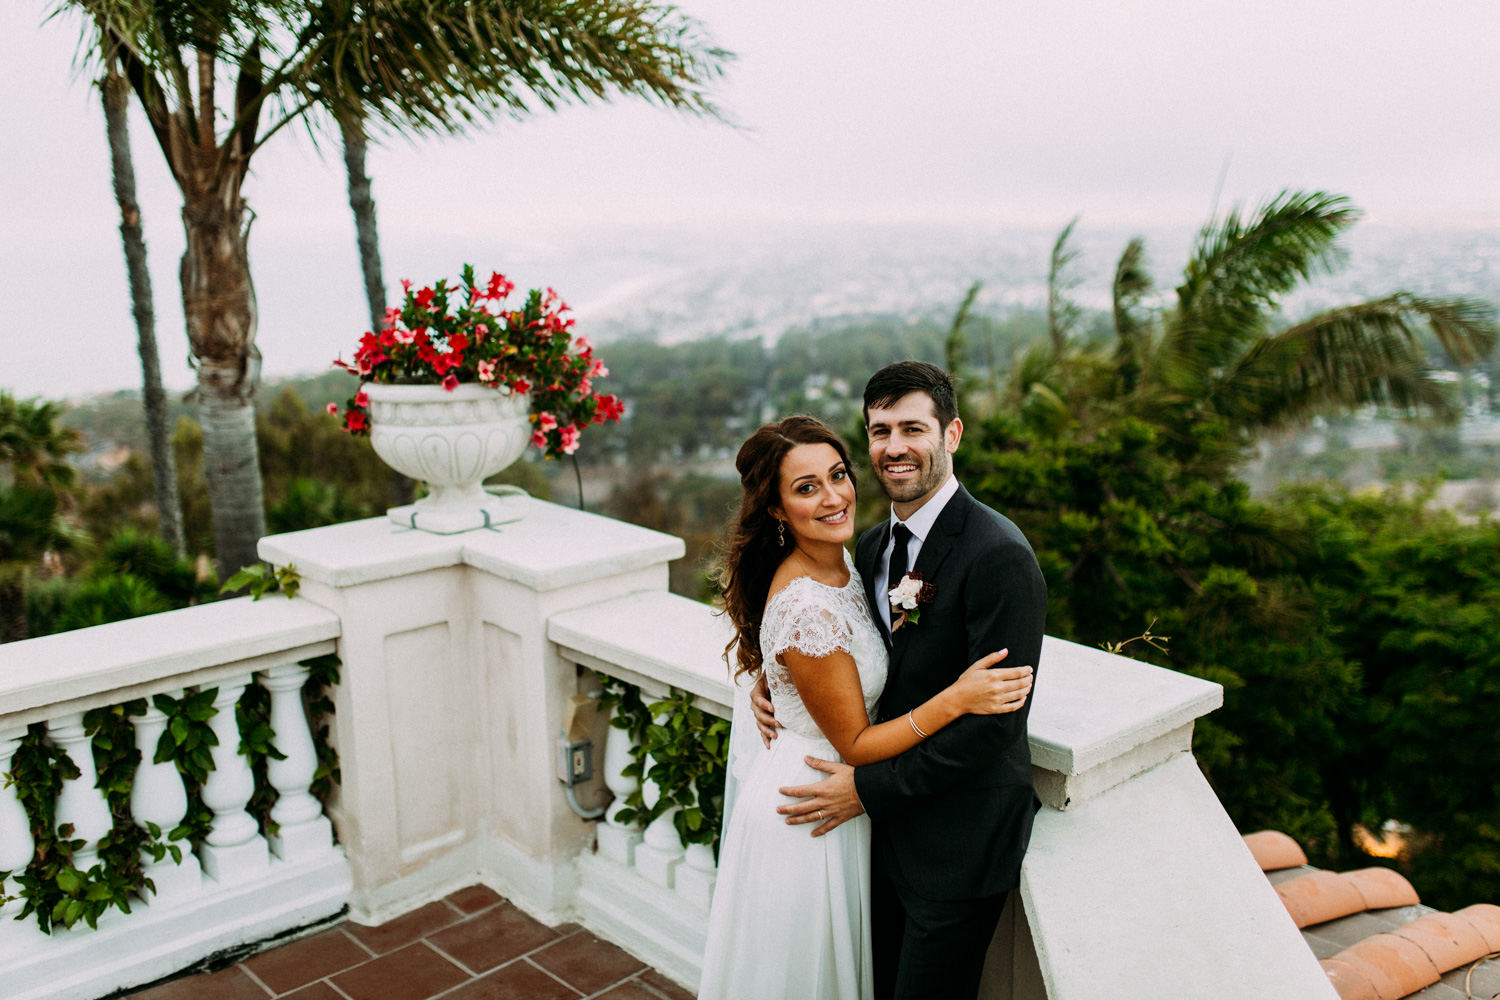 los angeles wedding palos verdes estates